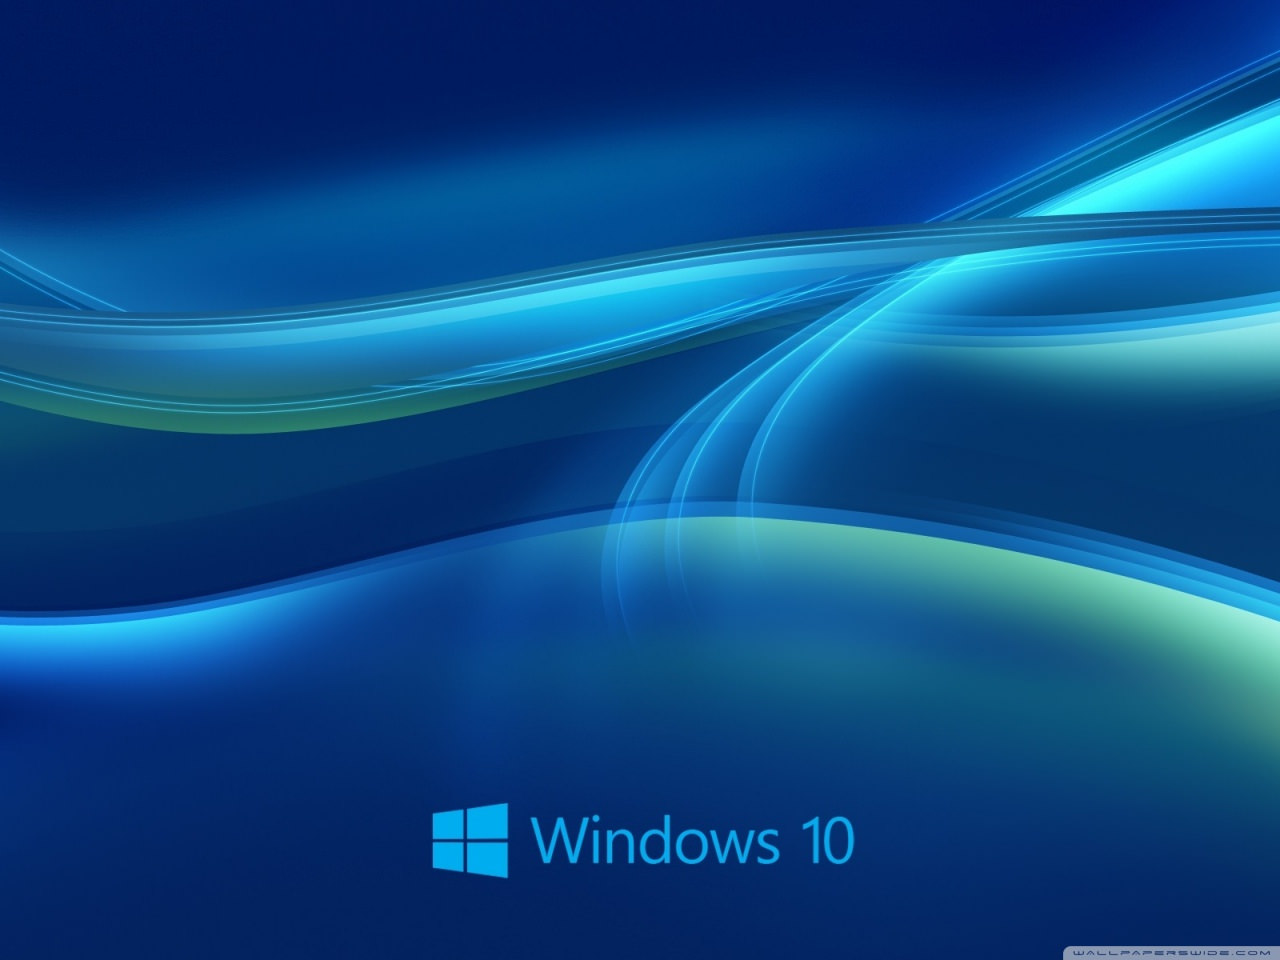 Amazing Windows 10 Wallpaper